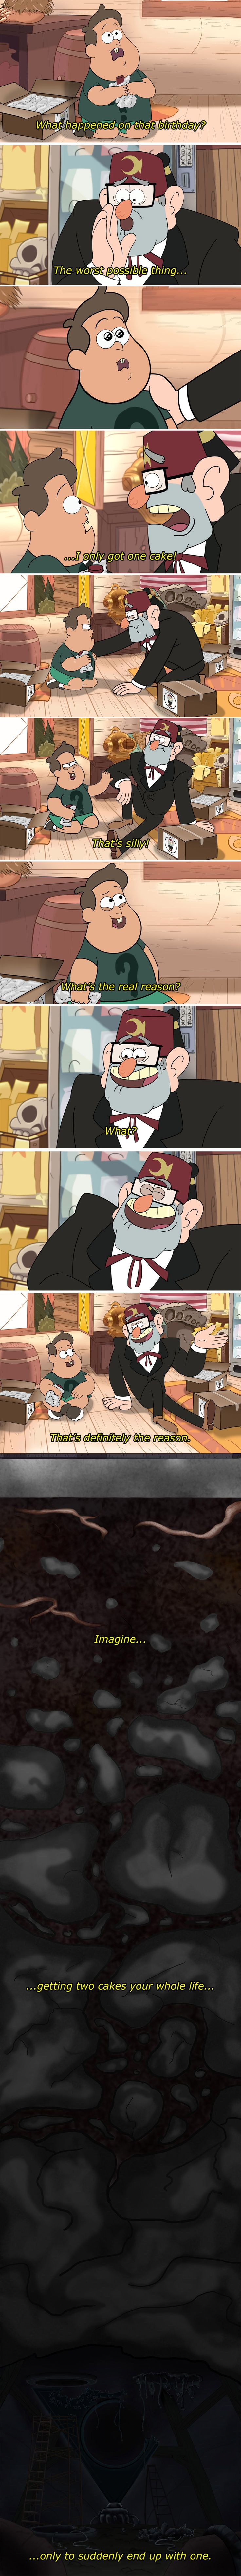 Soos learns he isn't the only one who doesn't like his own birthday